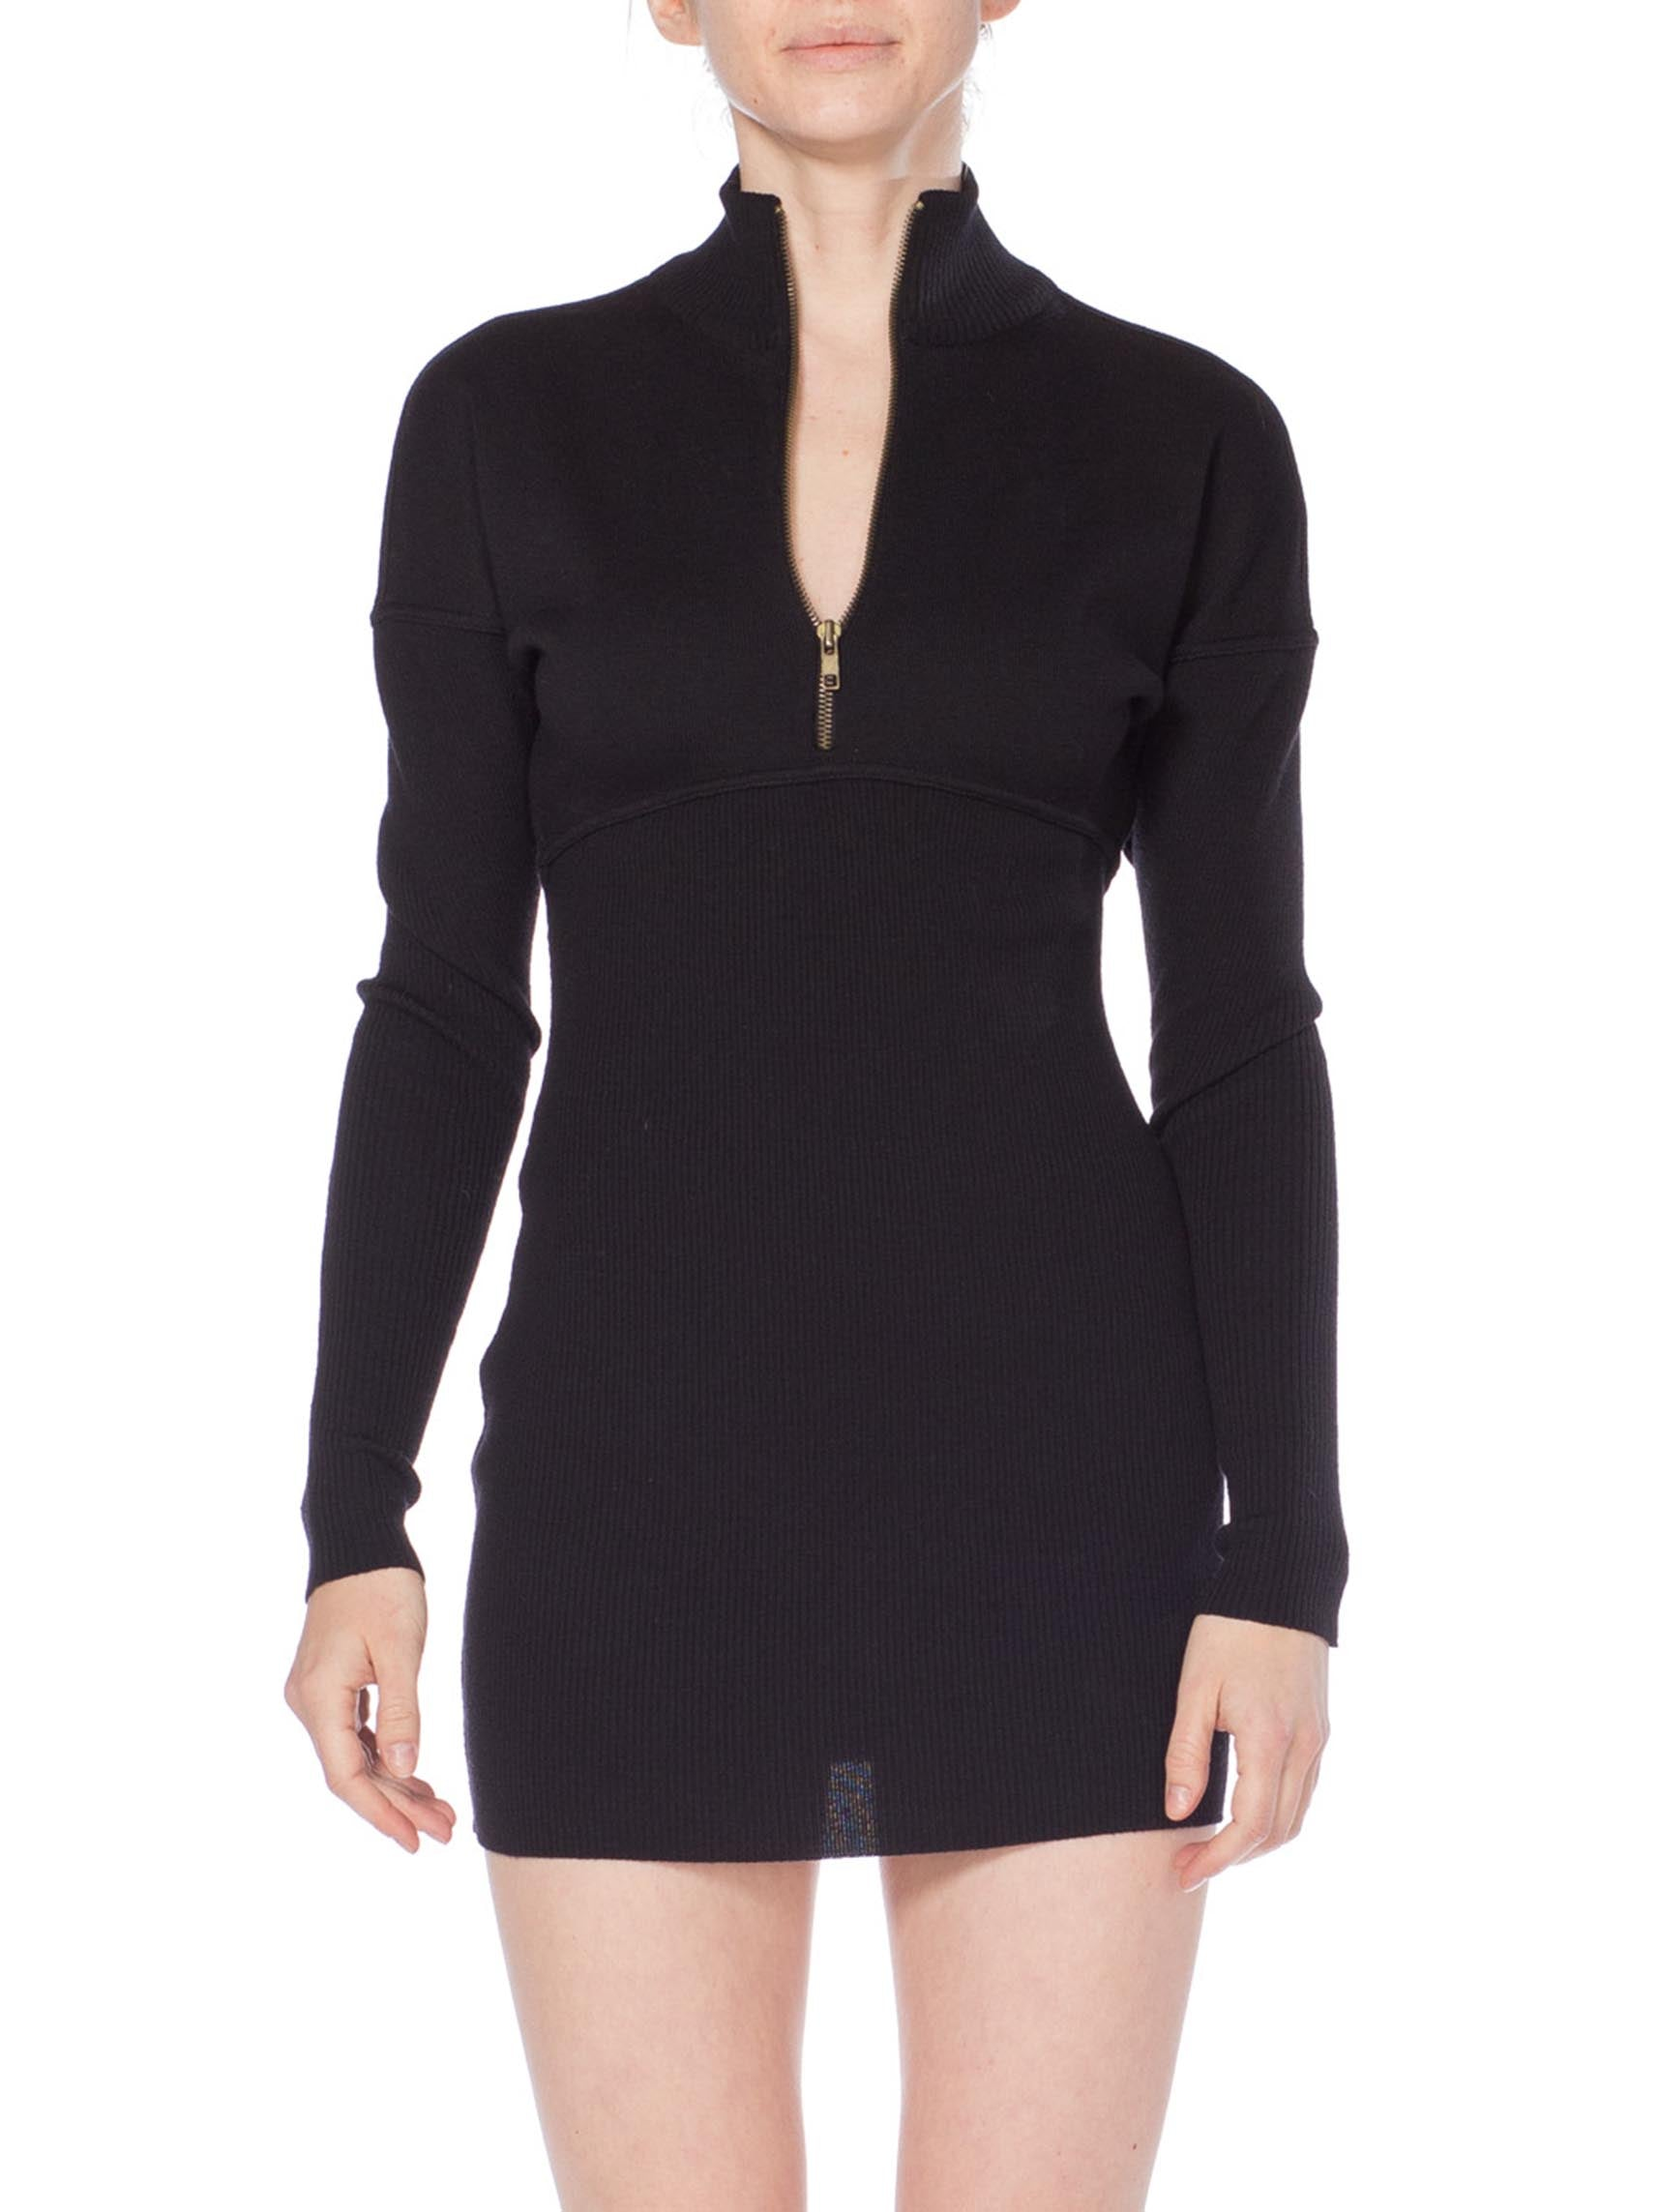 1990S Acrylic Alaia Zip Front Ribbed Knit Dolman Sleeve Bodycon Dress